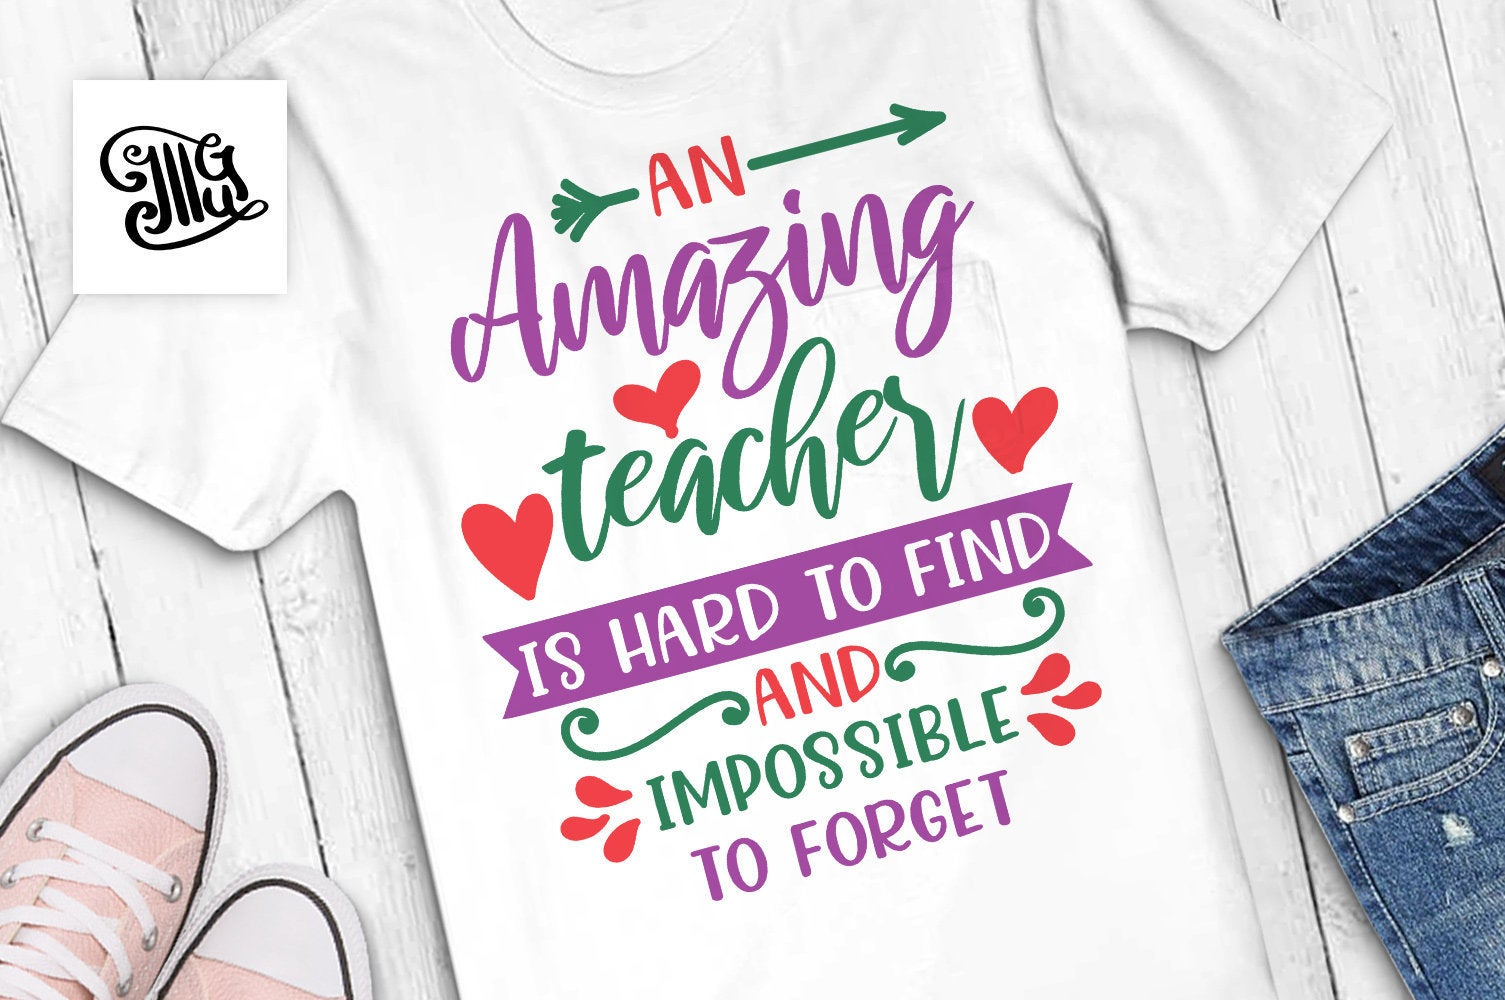 An amazing teacher is hard to find and impossible to forget svg, teacher appreciation svg, teacher svg, teacher shirt svg, teacher clipart-by Illustrator Guru